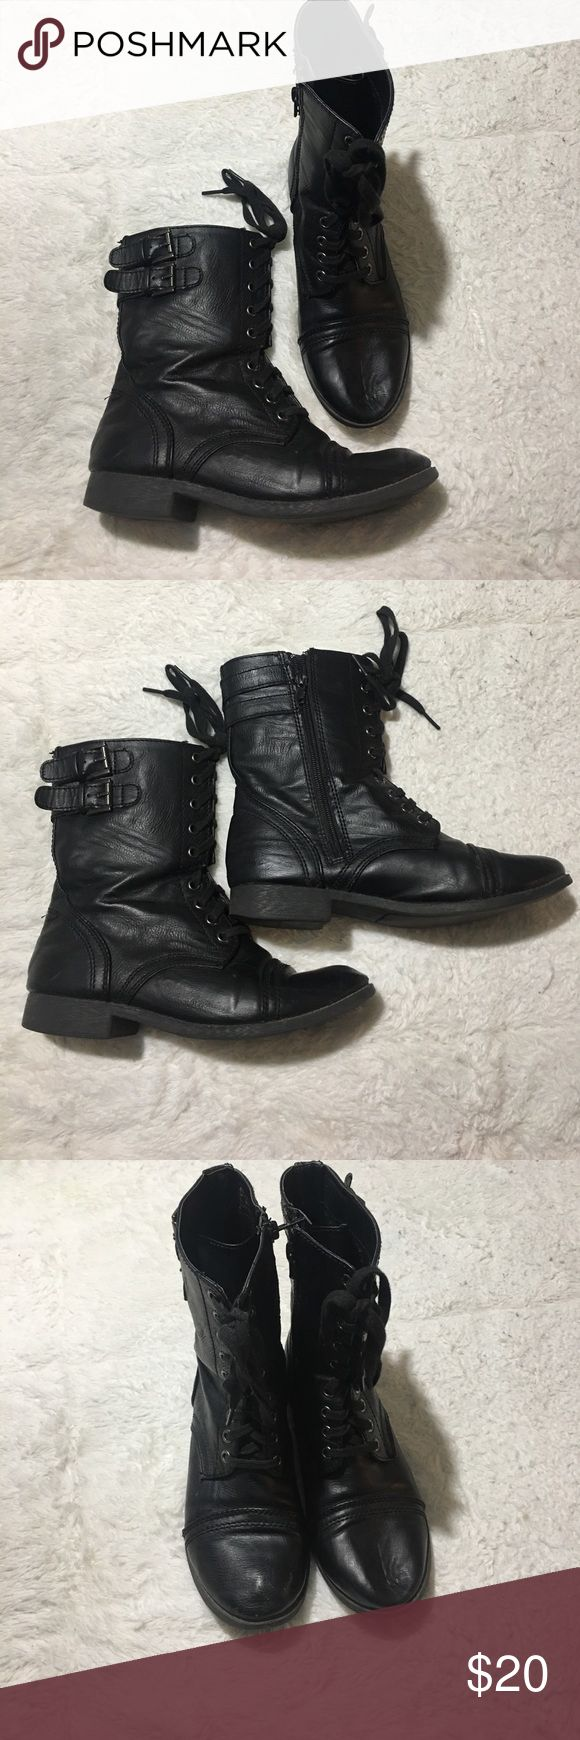 Combat boots 6.5 Cute combat boots! Brand is jaycer Jaycer Shoes Lace Up Boots